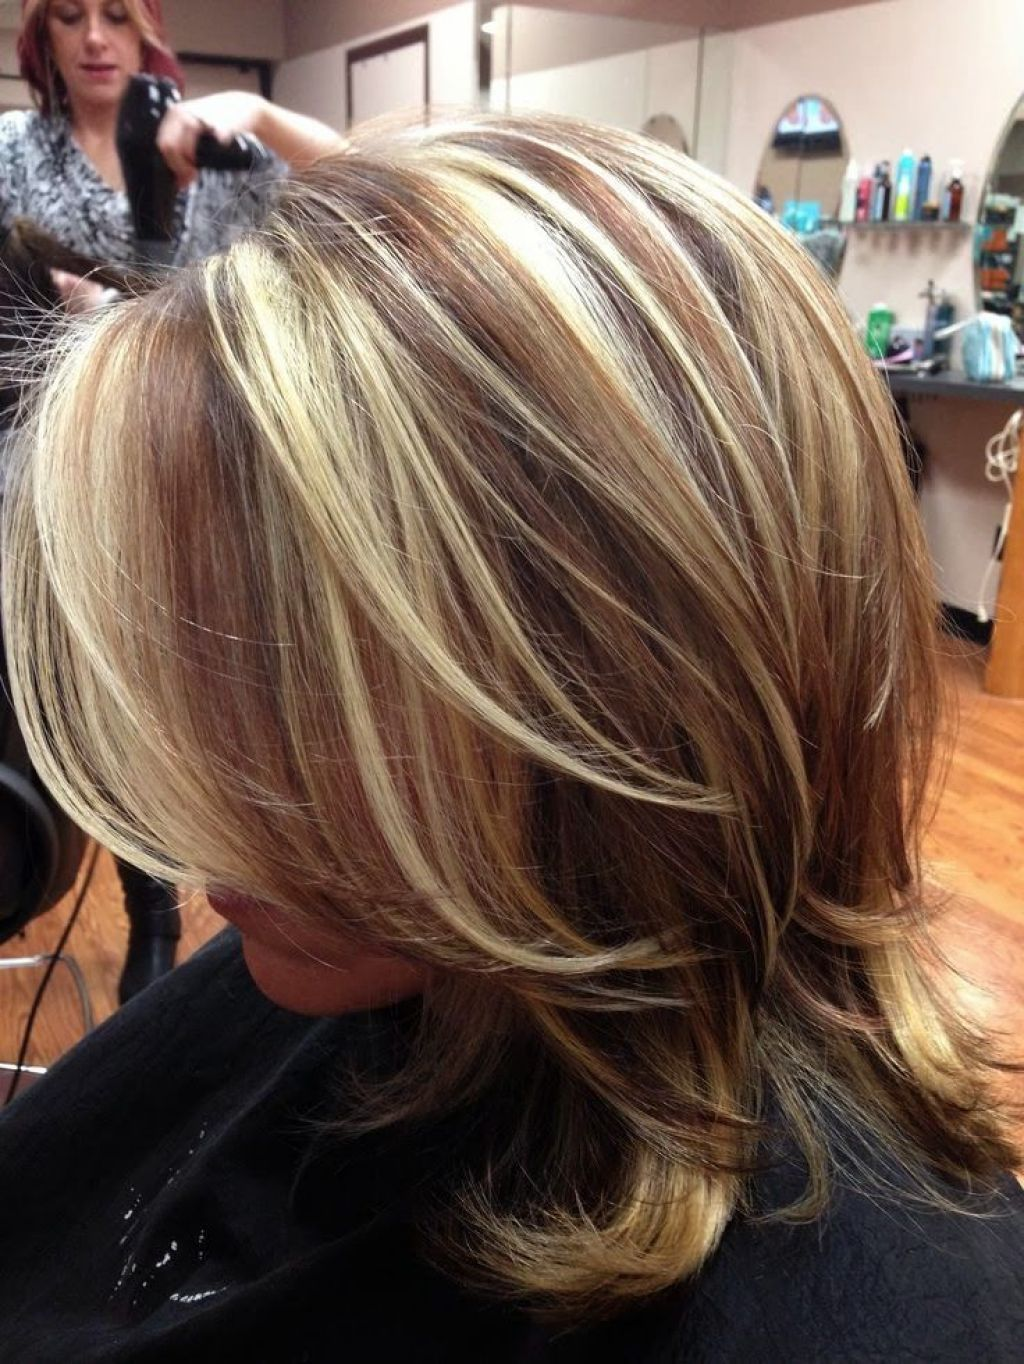 Hairstyles For Long Hair Highlights Brown Blonde Hair